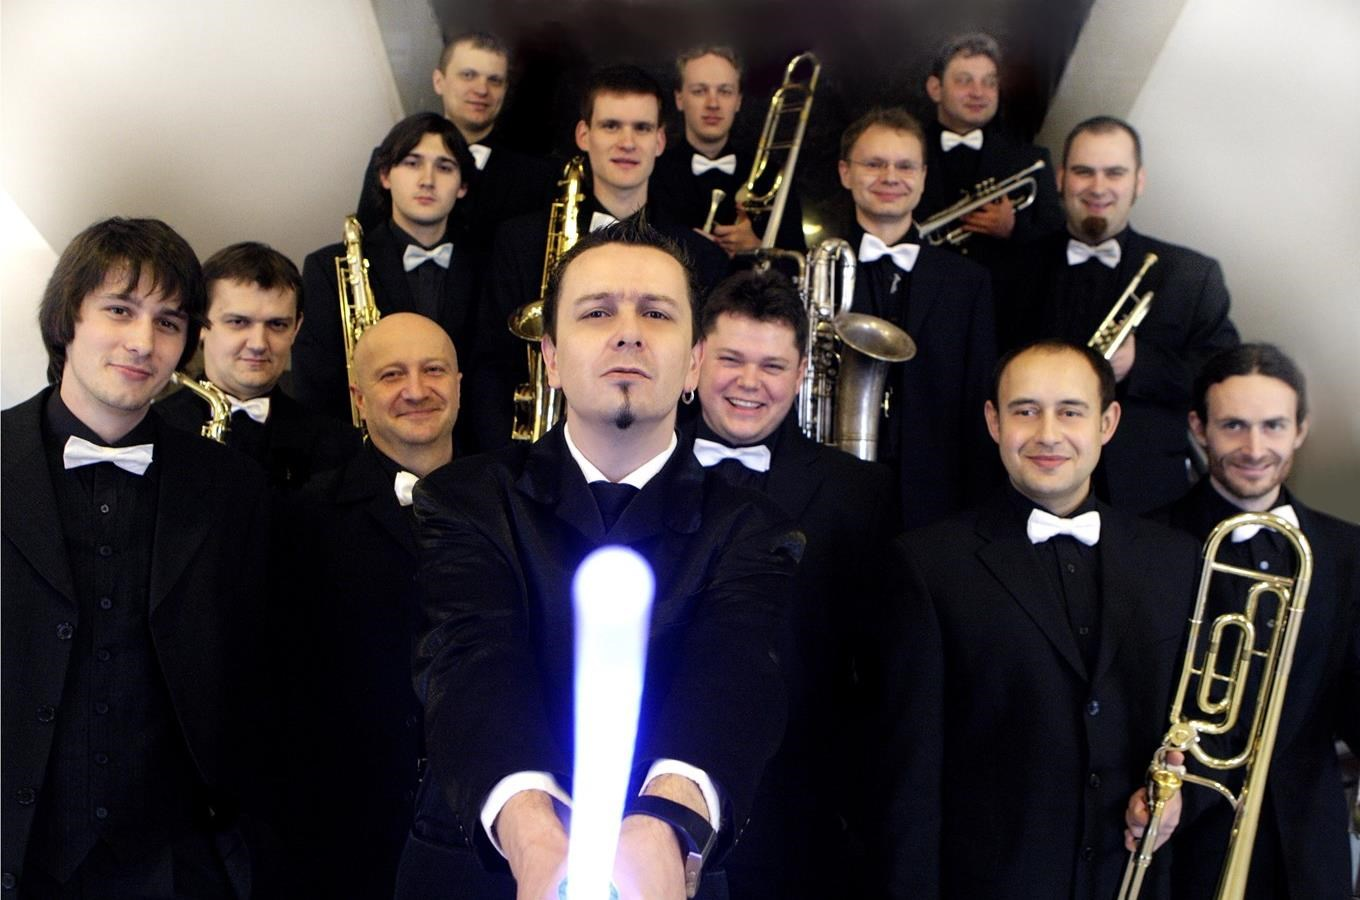 Jiří Ševčík + PIRATE SWING Band